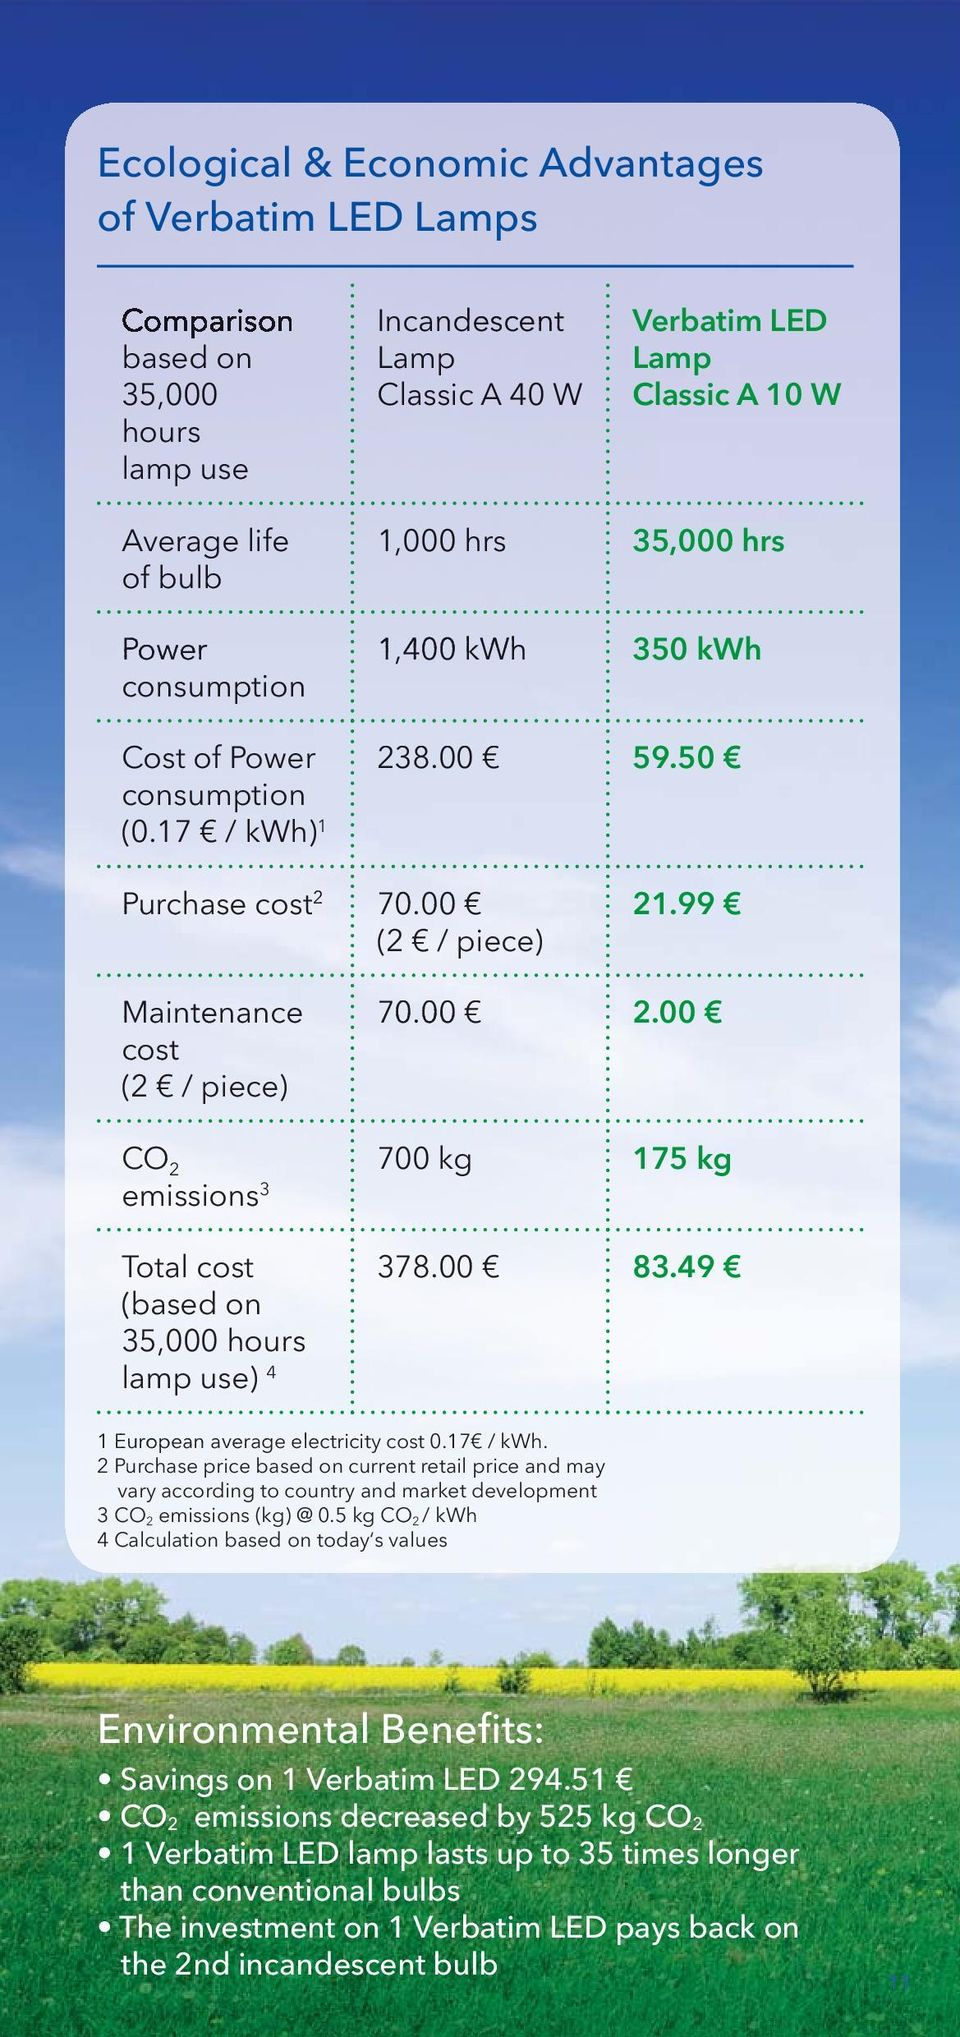 99 Ma intena nce cost (2 / piece) CO 2 emissions 3 Total cost (based on 35,000 hours lamp use) 4 70.00 2.00 700 kg 175 kg 378.00 83.49 1 European average electricity cost 0.17 / kwh.